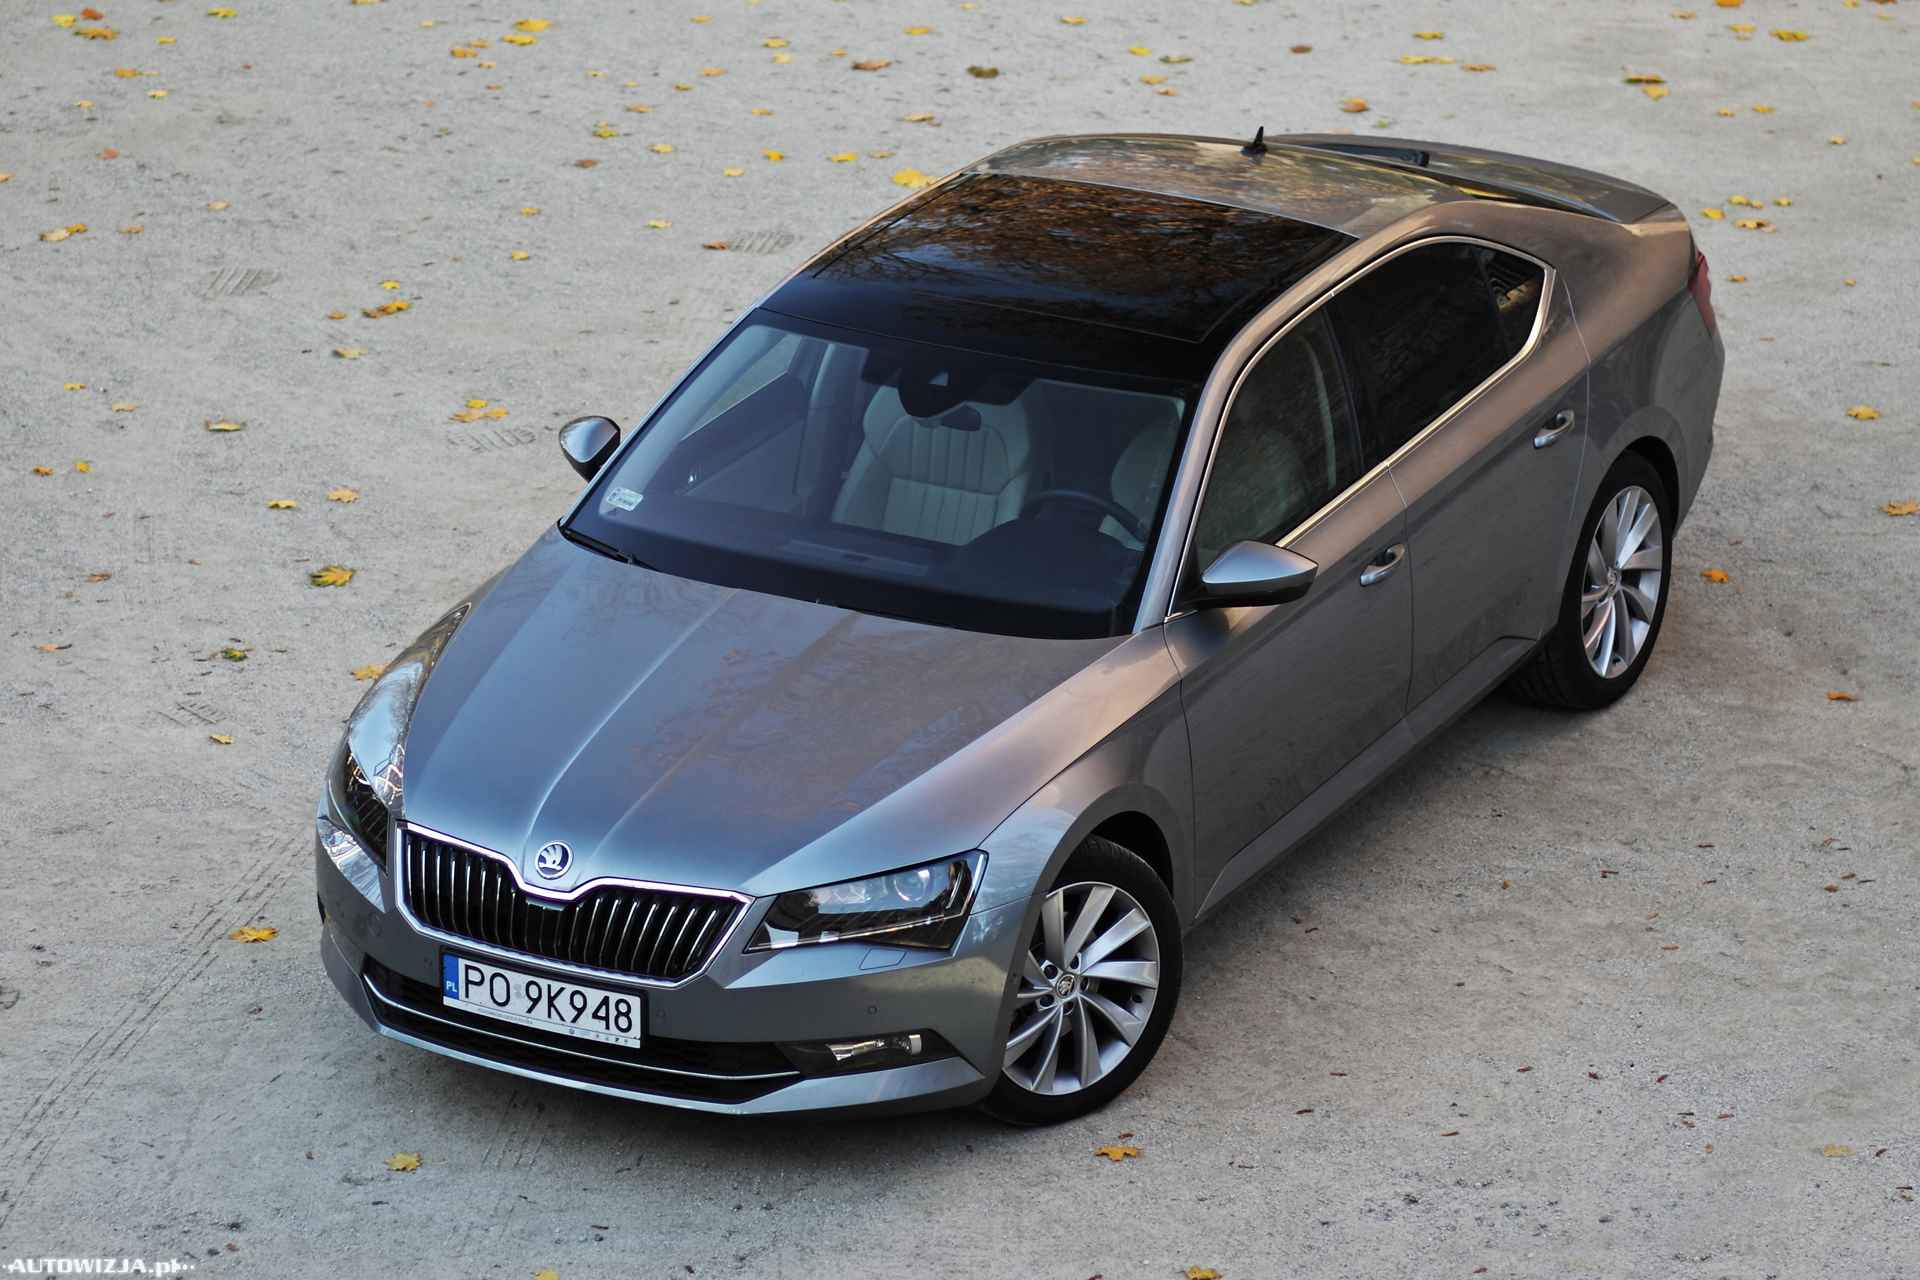 skoda superb limousine style 1 4 tsi 150 km act auto test motoryzacja. Black Bedroom Furniture Sets. Home Design Ideas